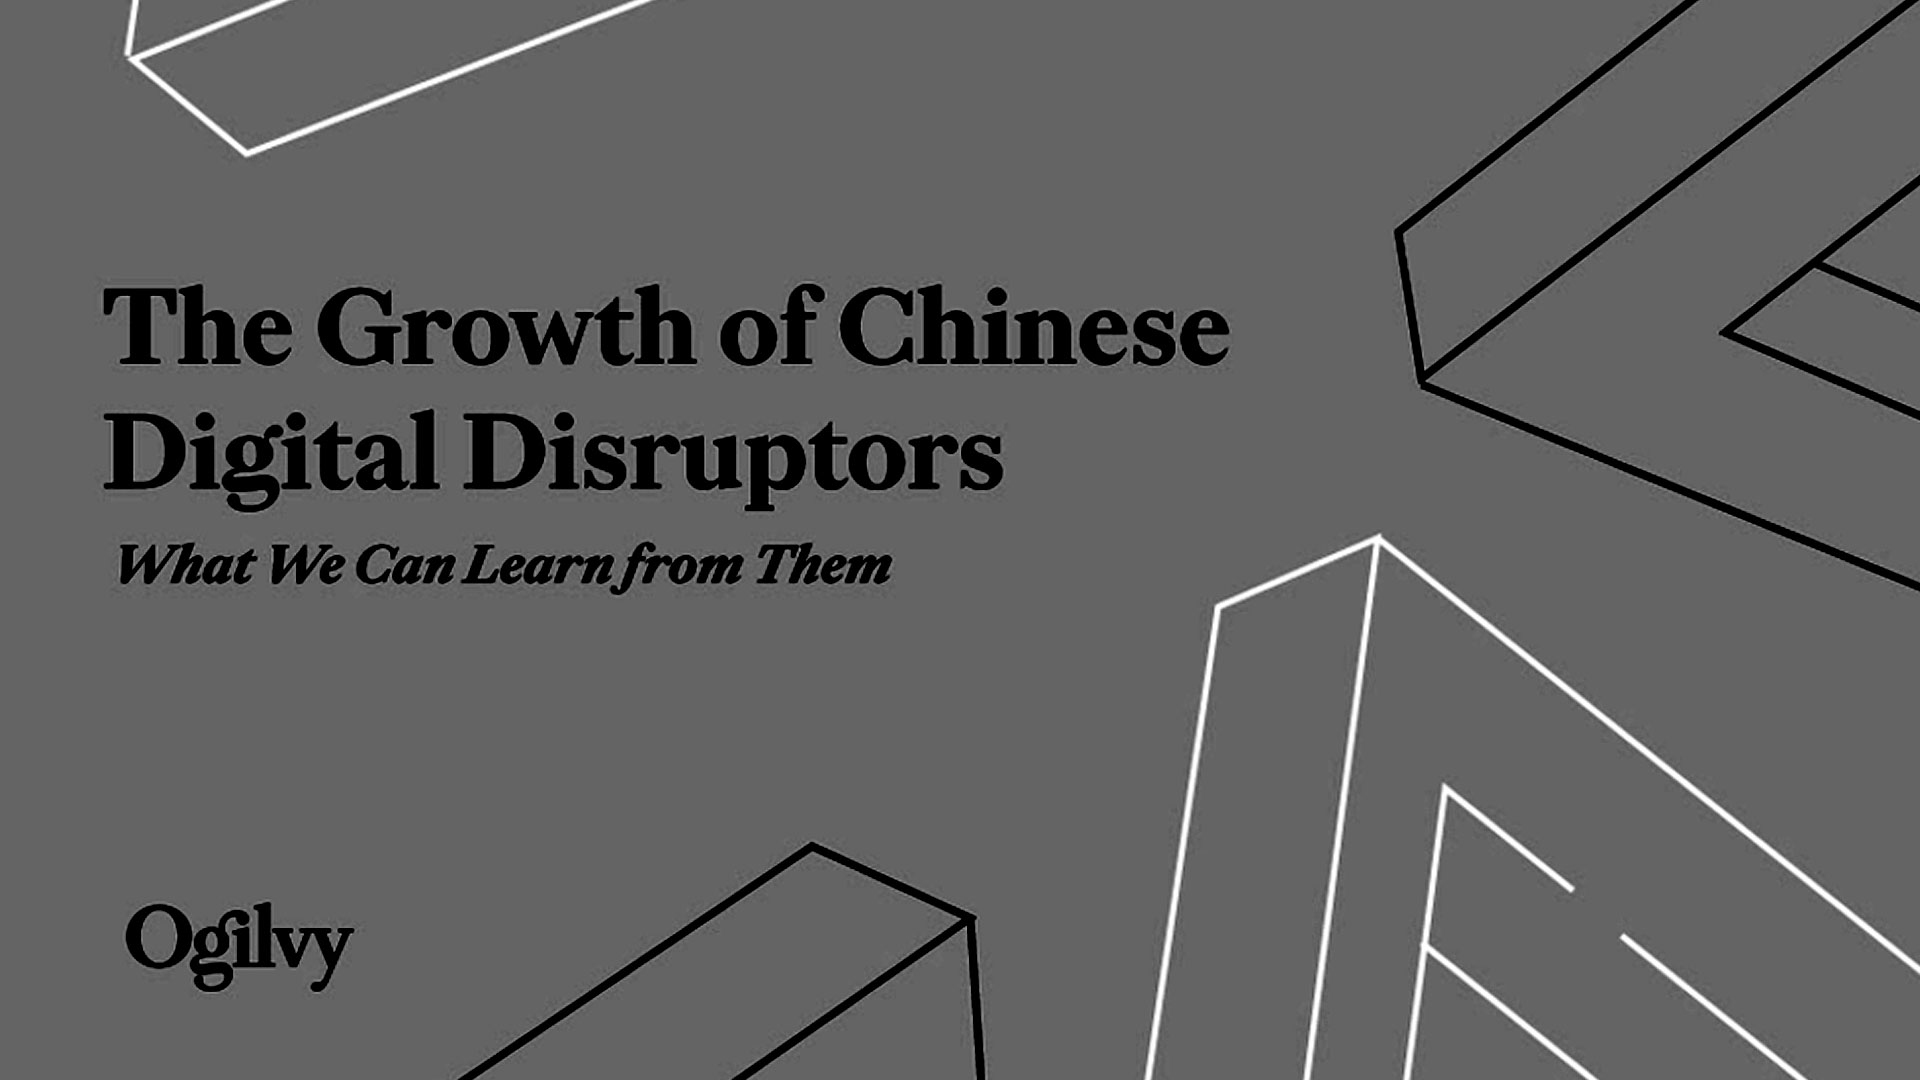 The Growth of Chinese Digital Disruptors